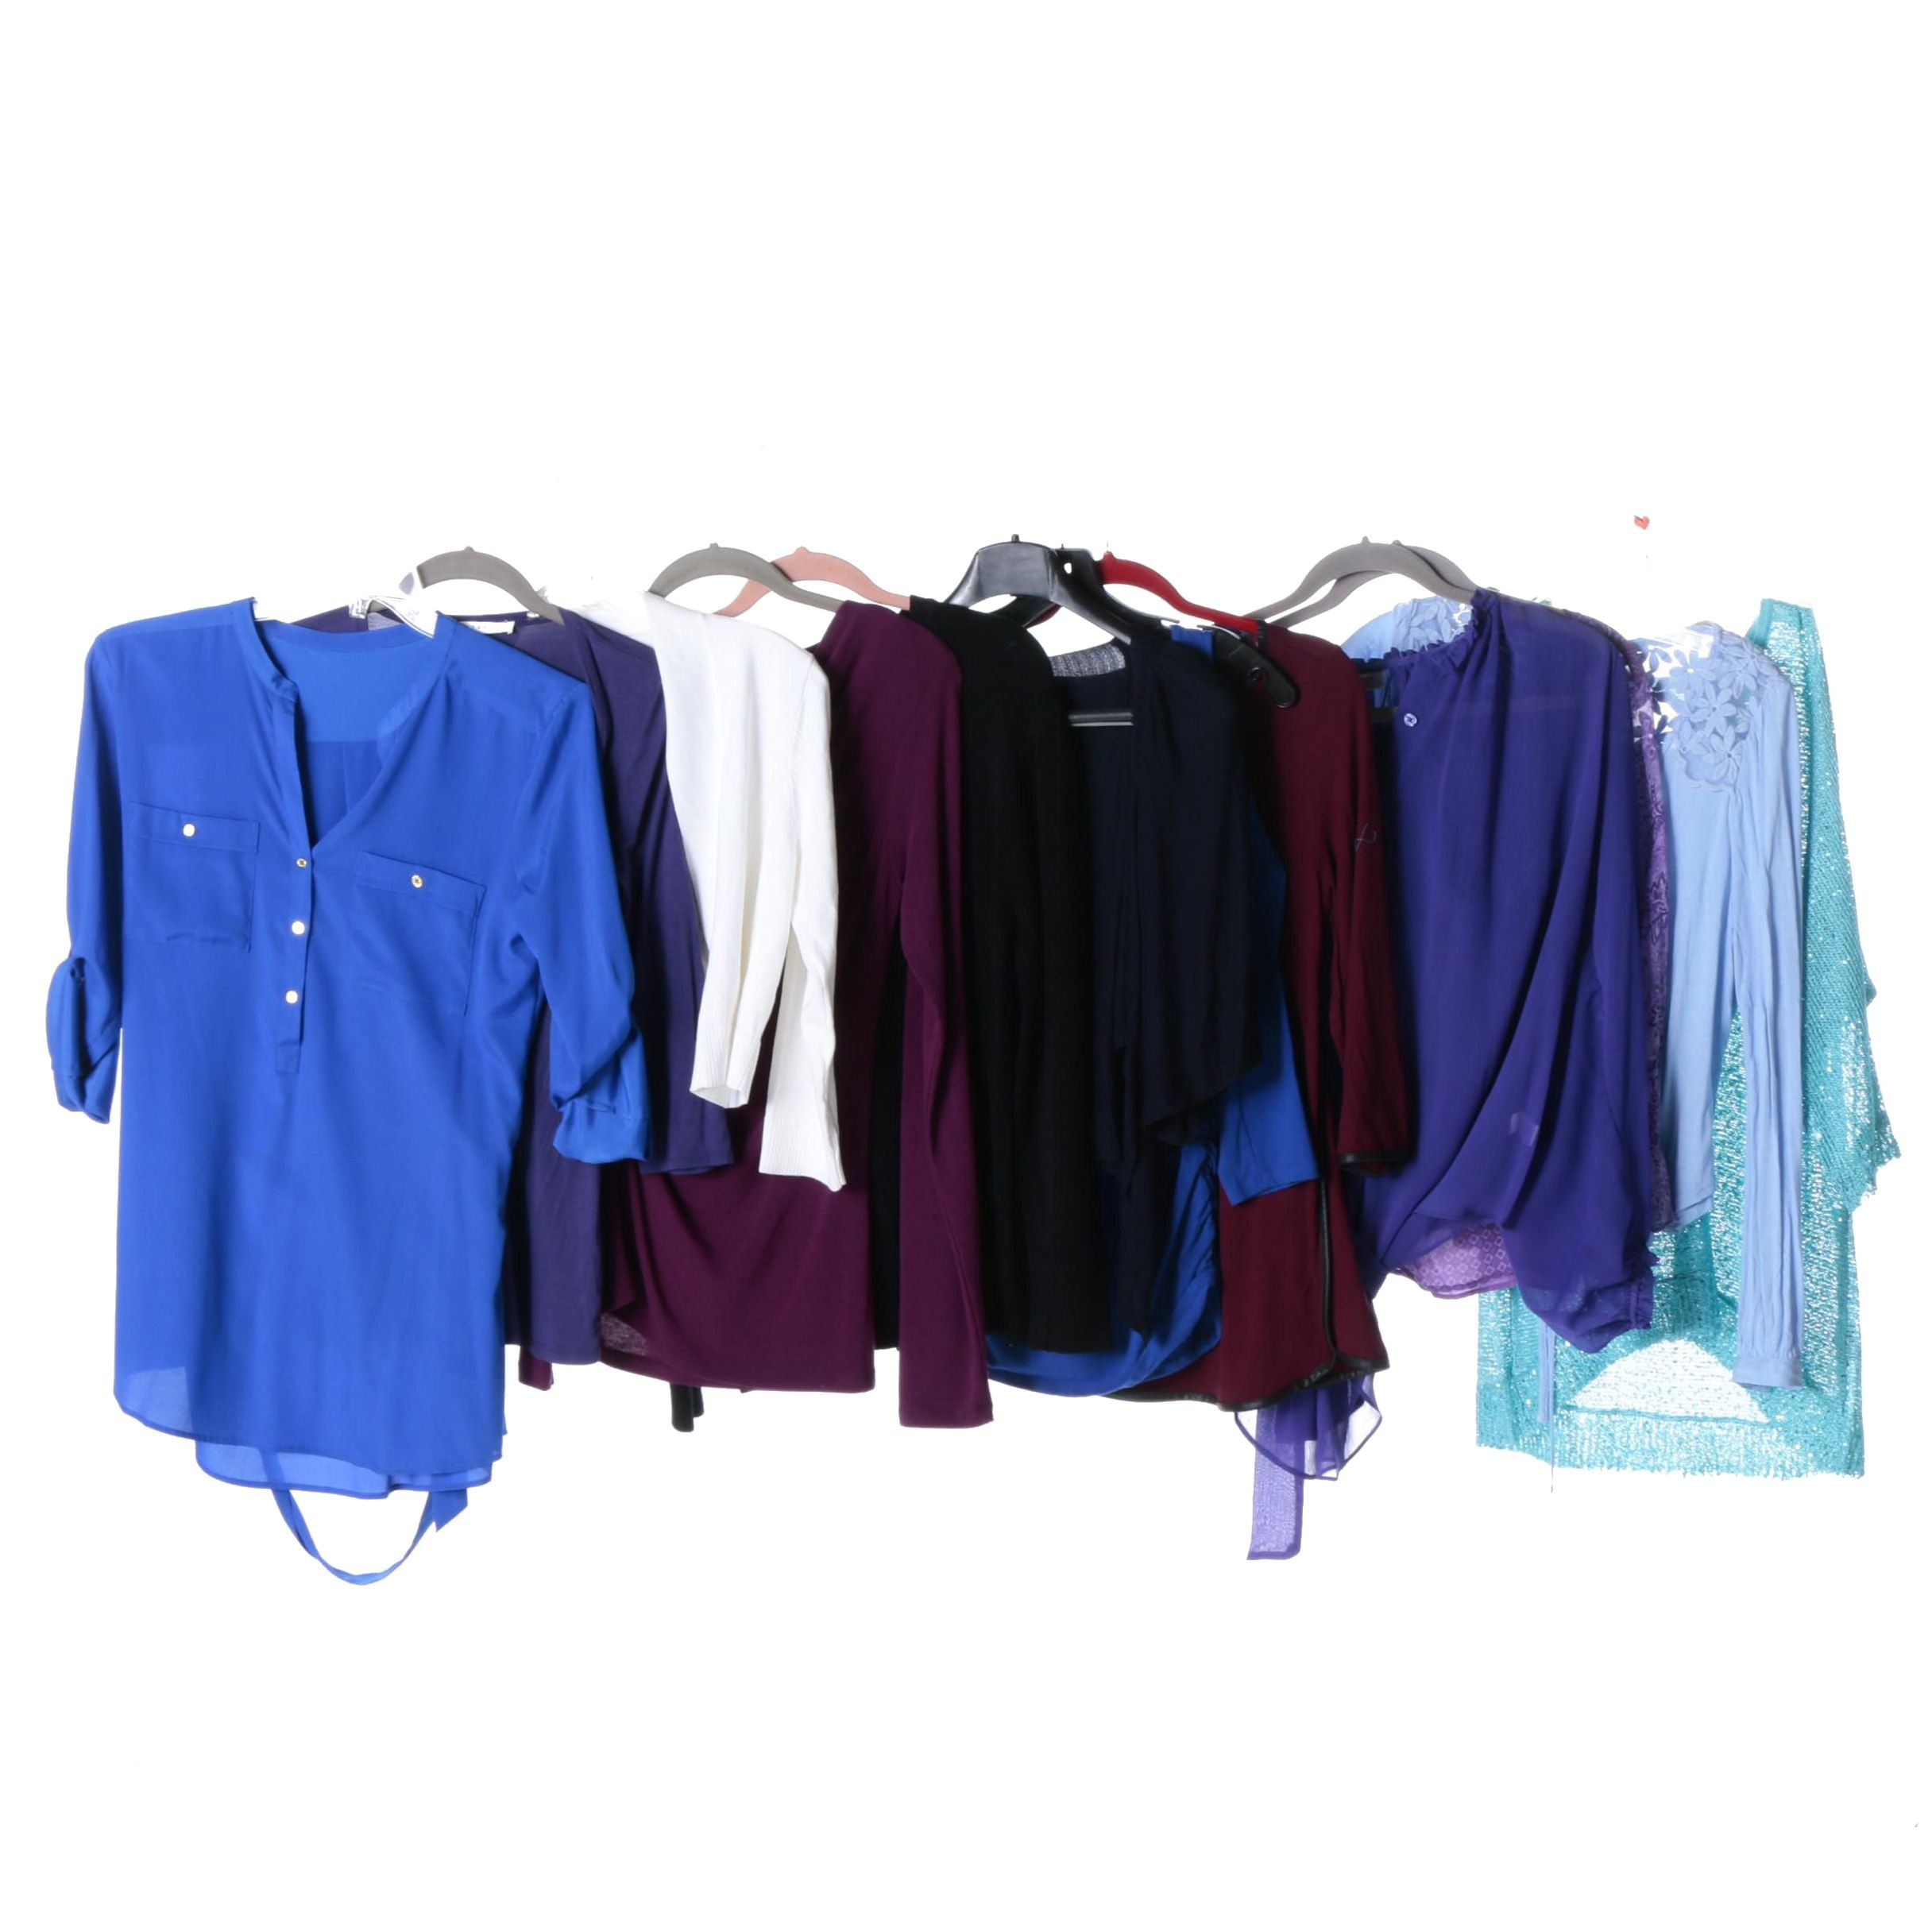 Women's Colorful Blouses and Tops